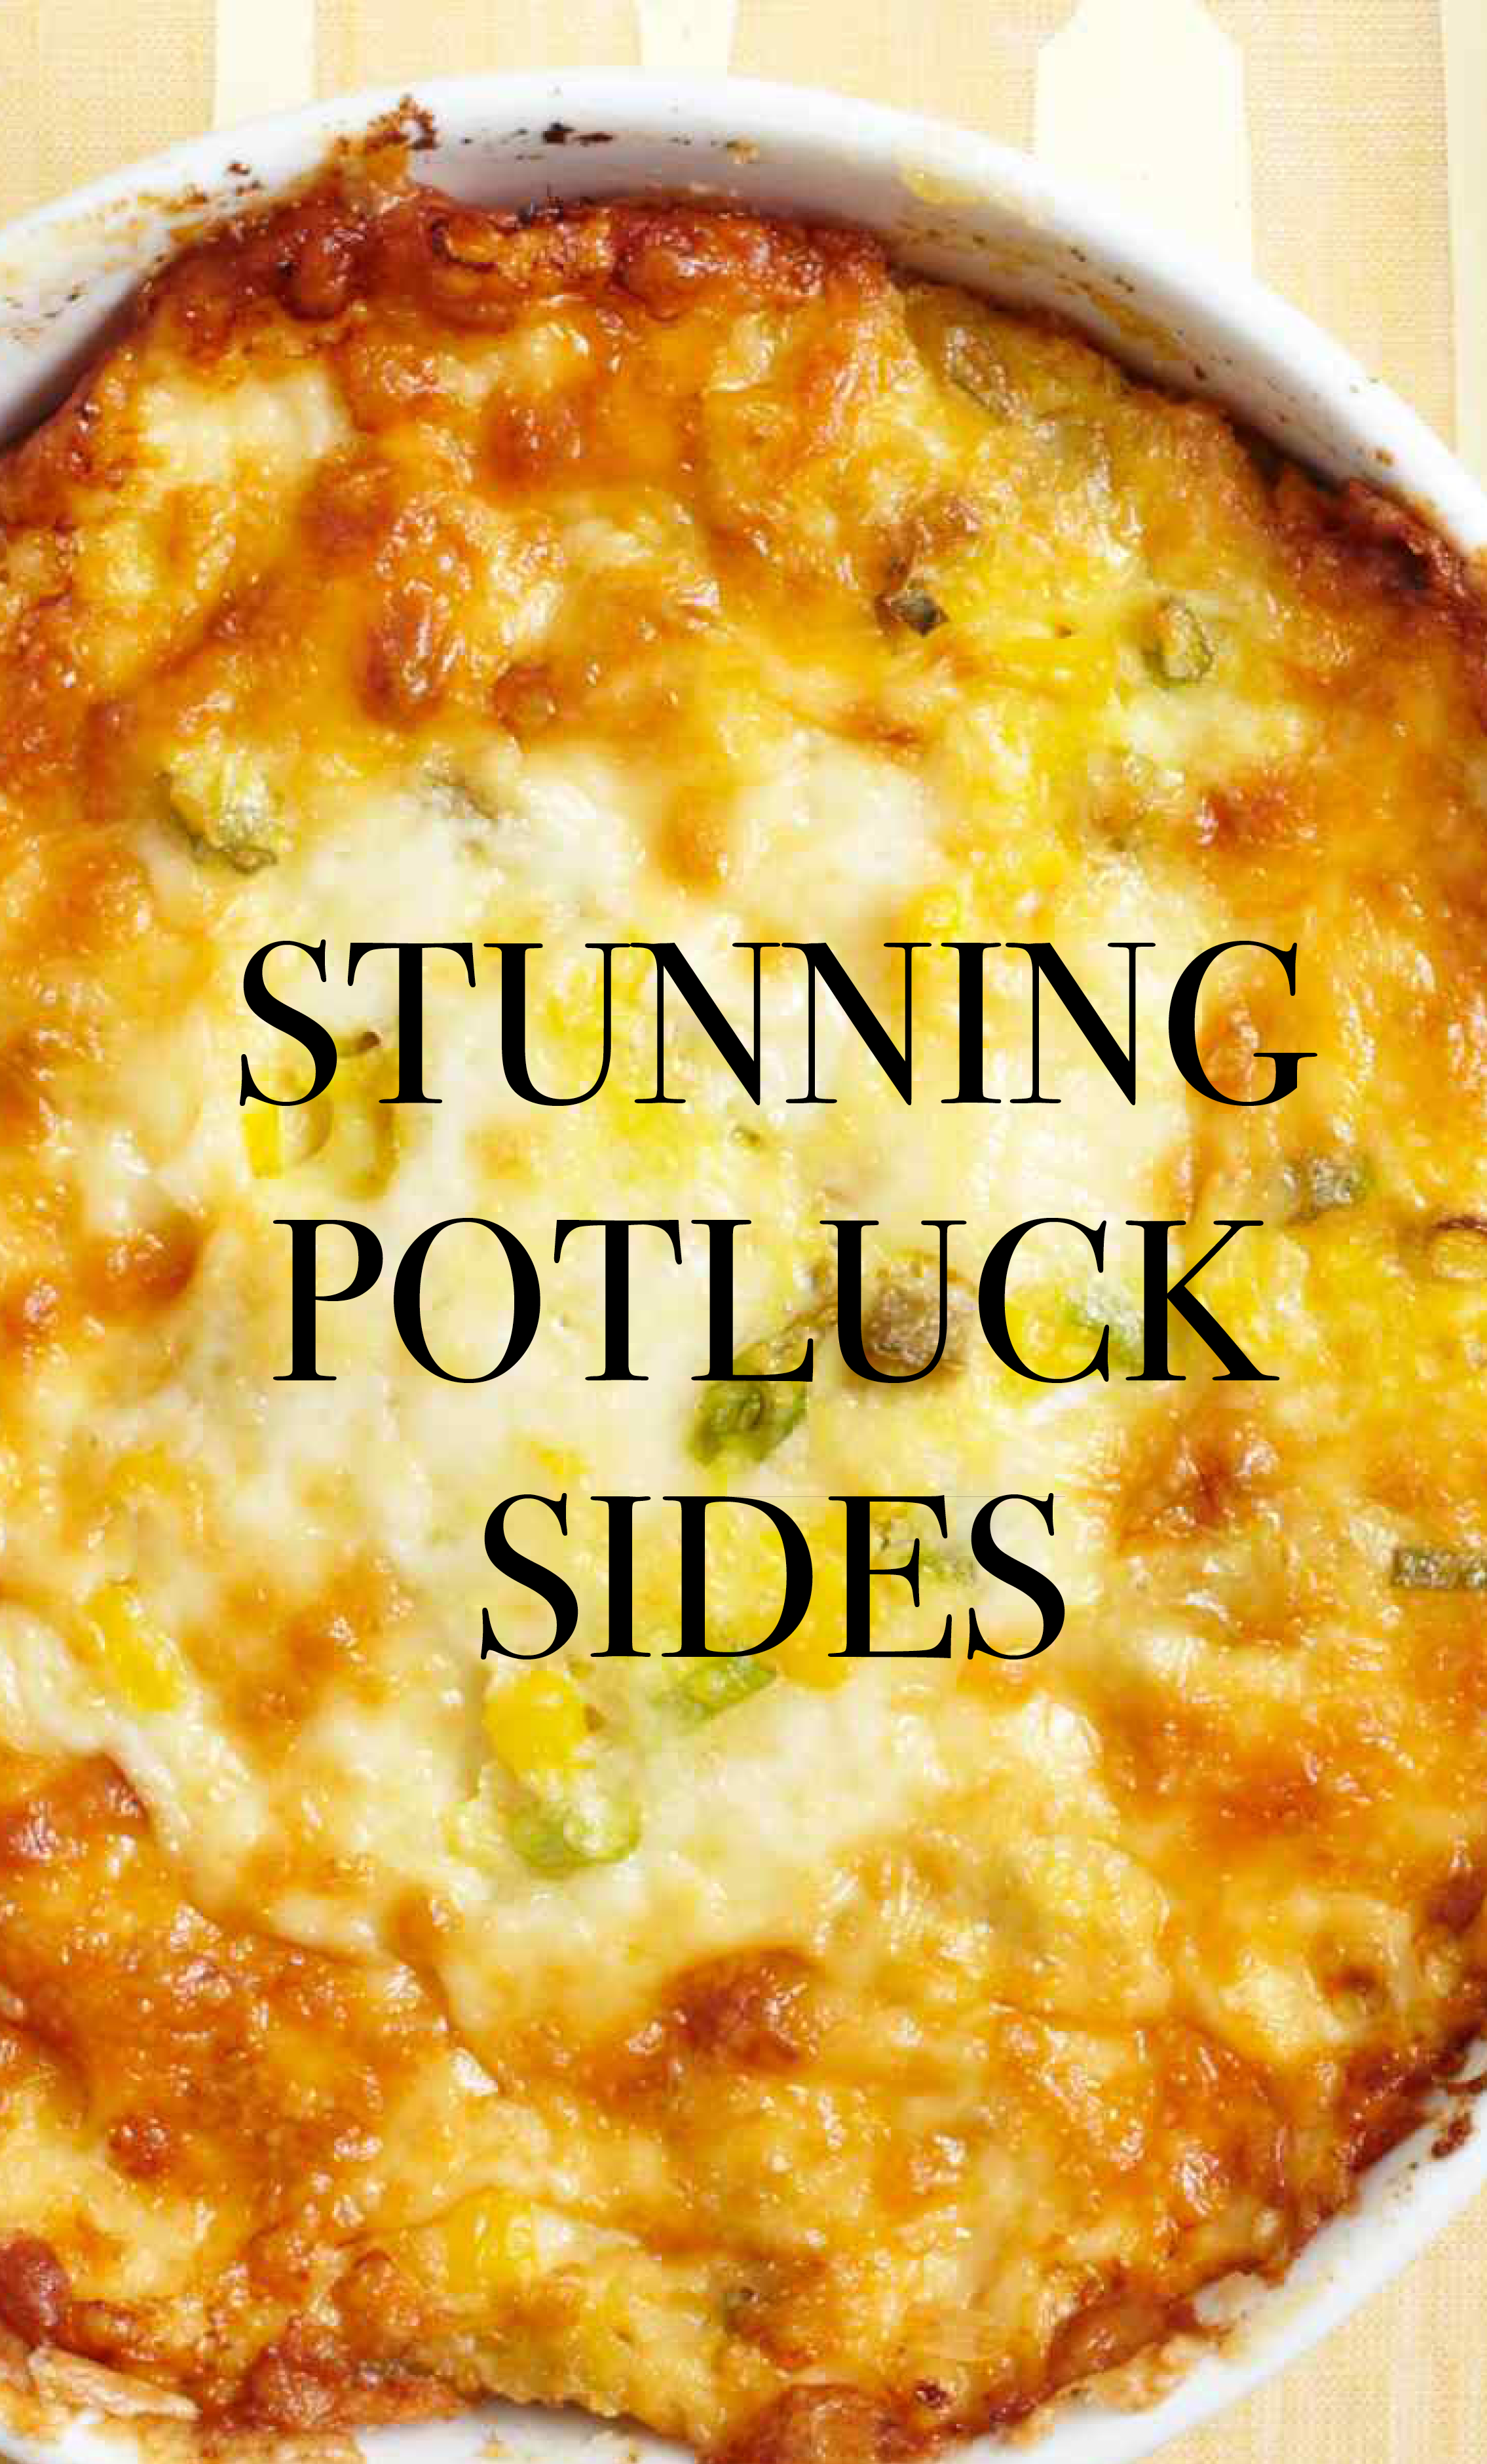 15 Stunning Potluck Sides That Might Just Steal the Show